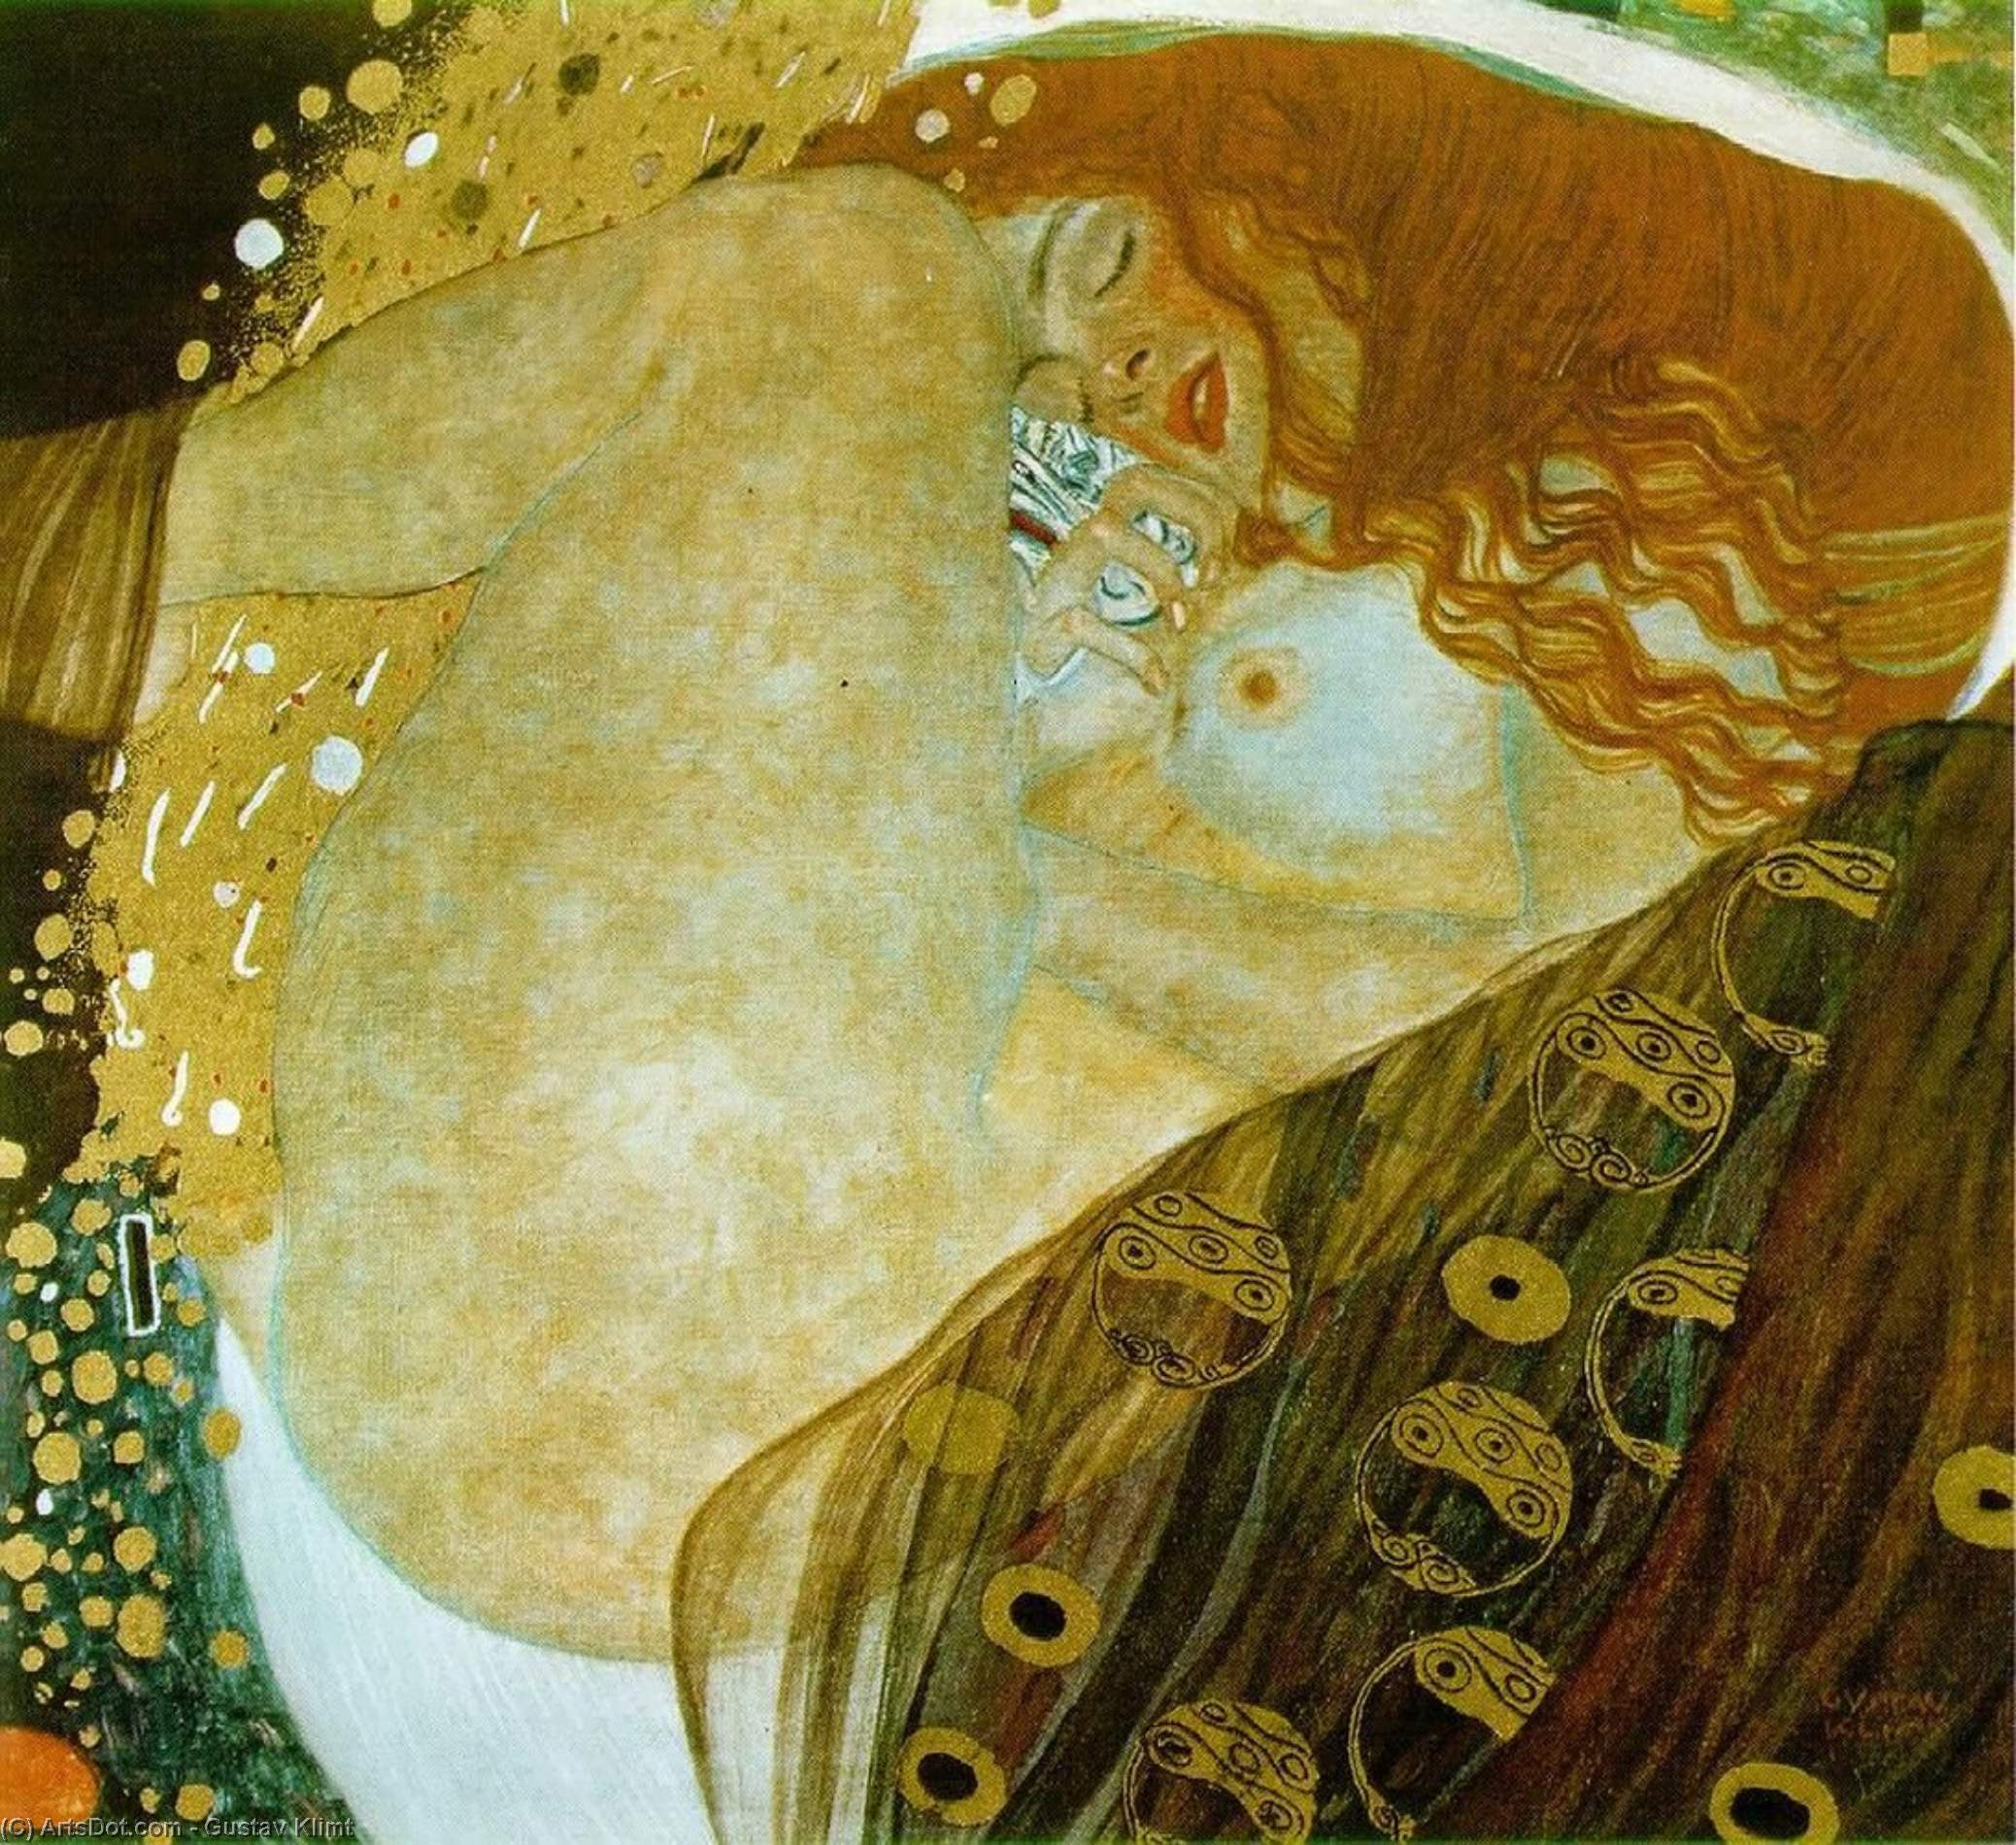 Wikioo.org - The Encyclopedia of Fine Arts - Painting, Artwork by Gustav Klimt - Danae